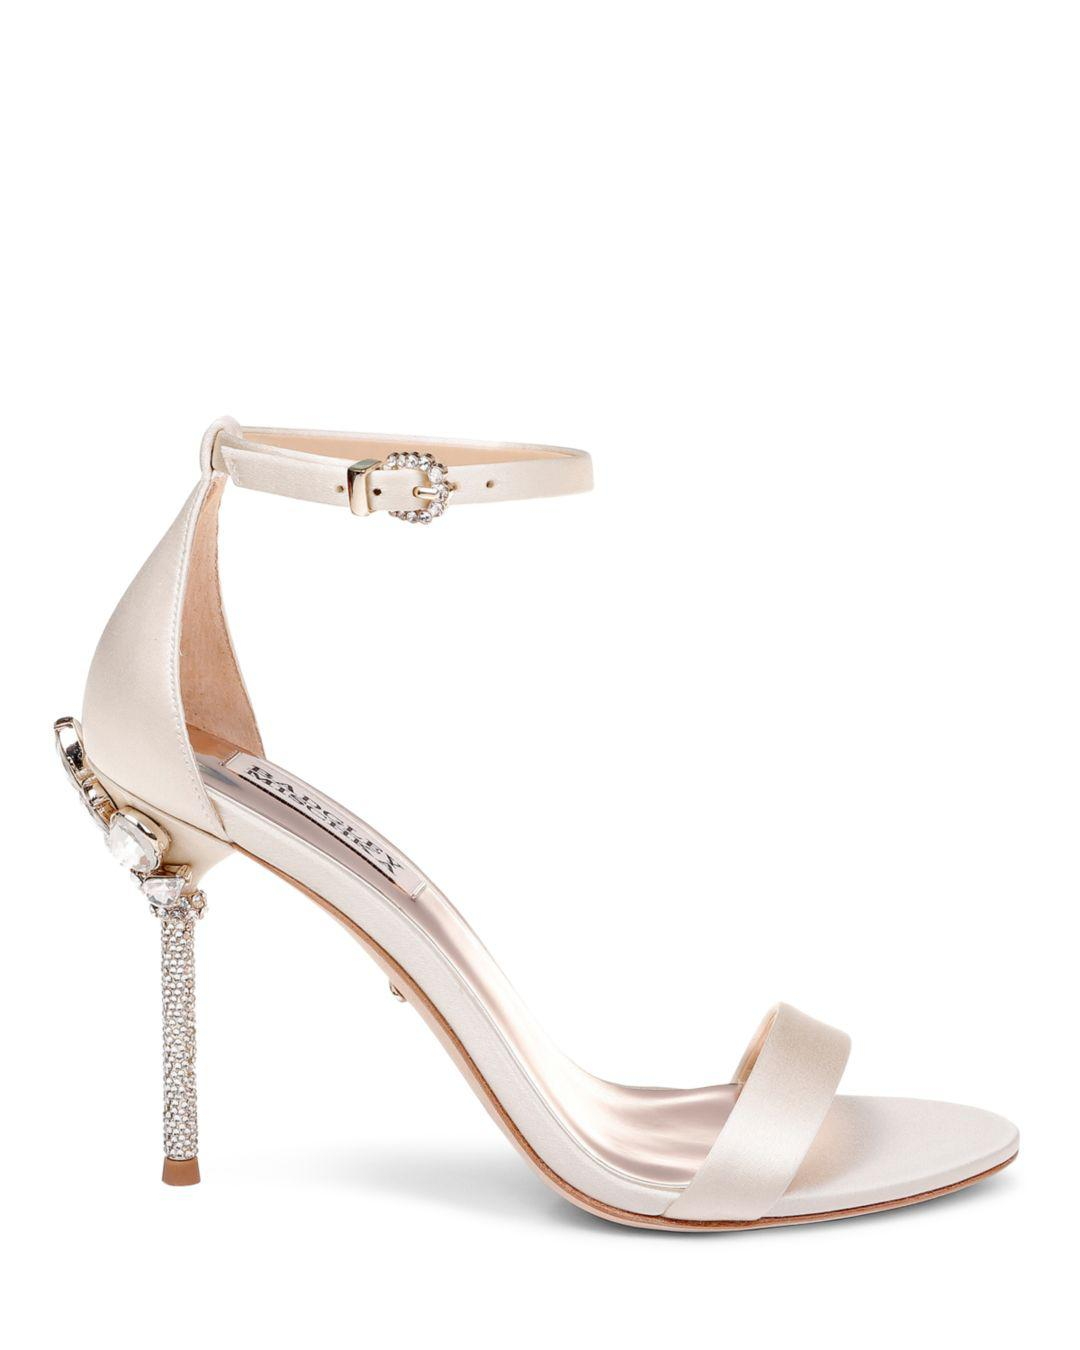 91a219e74cb Lyst - Badgley Mischka Women s Vicia Embellished Satin High-heel Sandals in  White